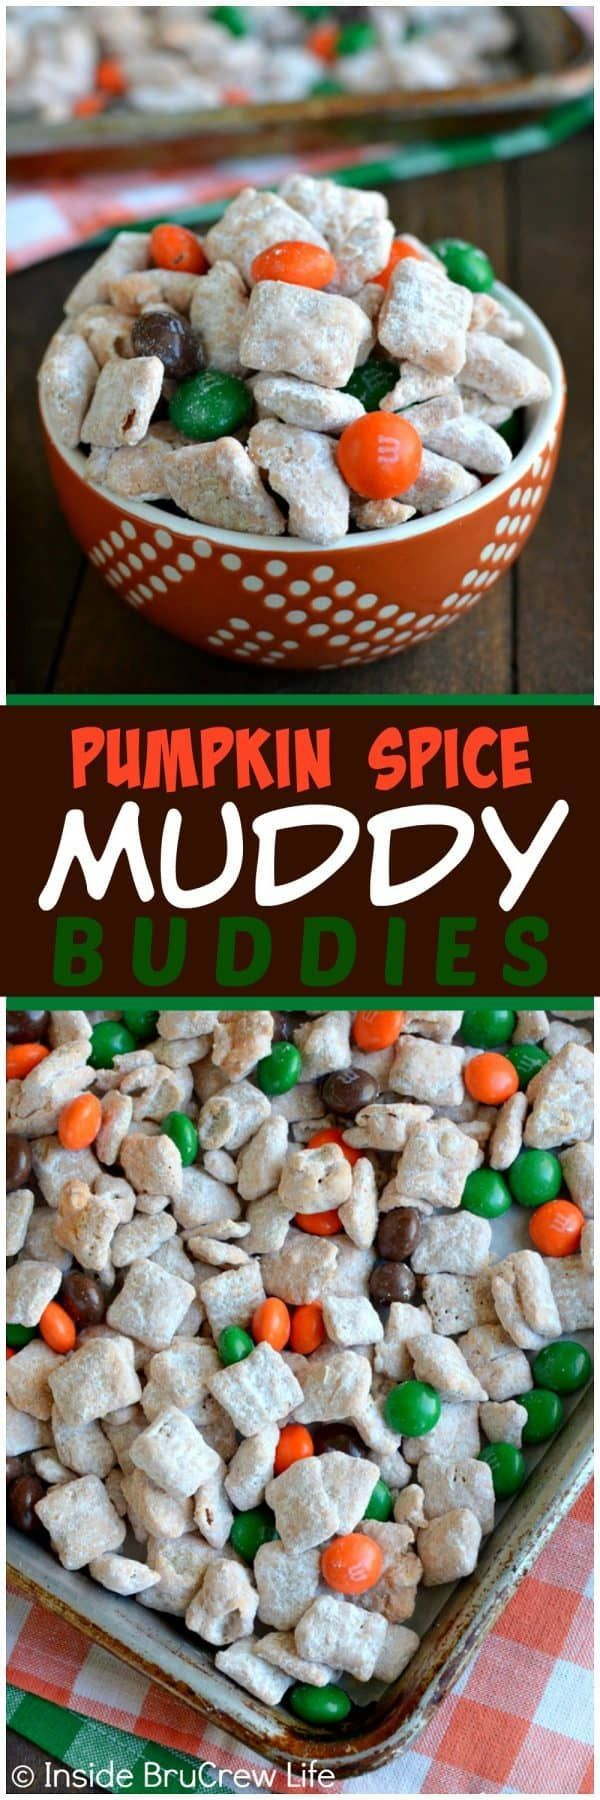 Cinnamon Pumpkin Spice Muddy Buddies - this easy snack mix is coated in pumpkin spice chocolate and has lots of fall colored candies. Great no bake recipe to make for fall parties!